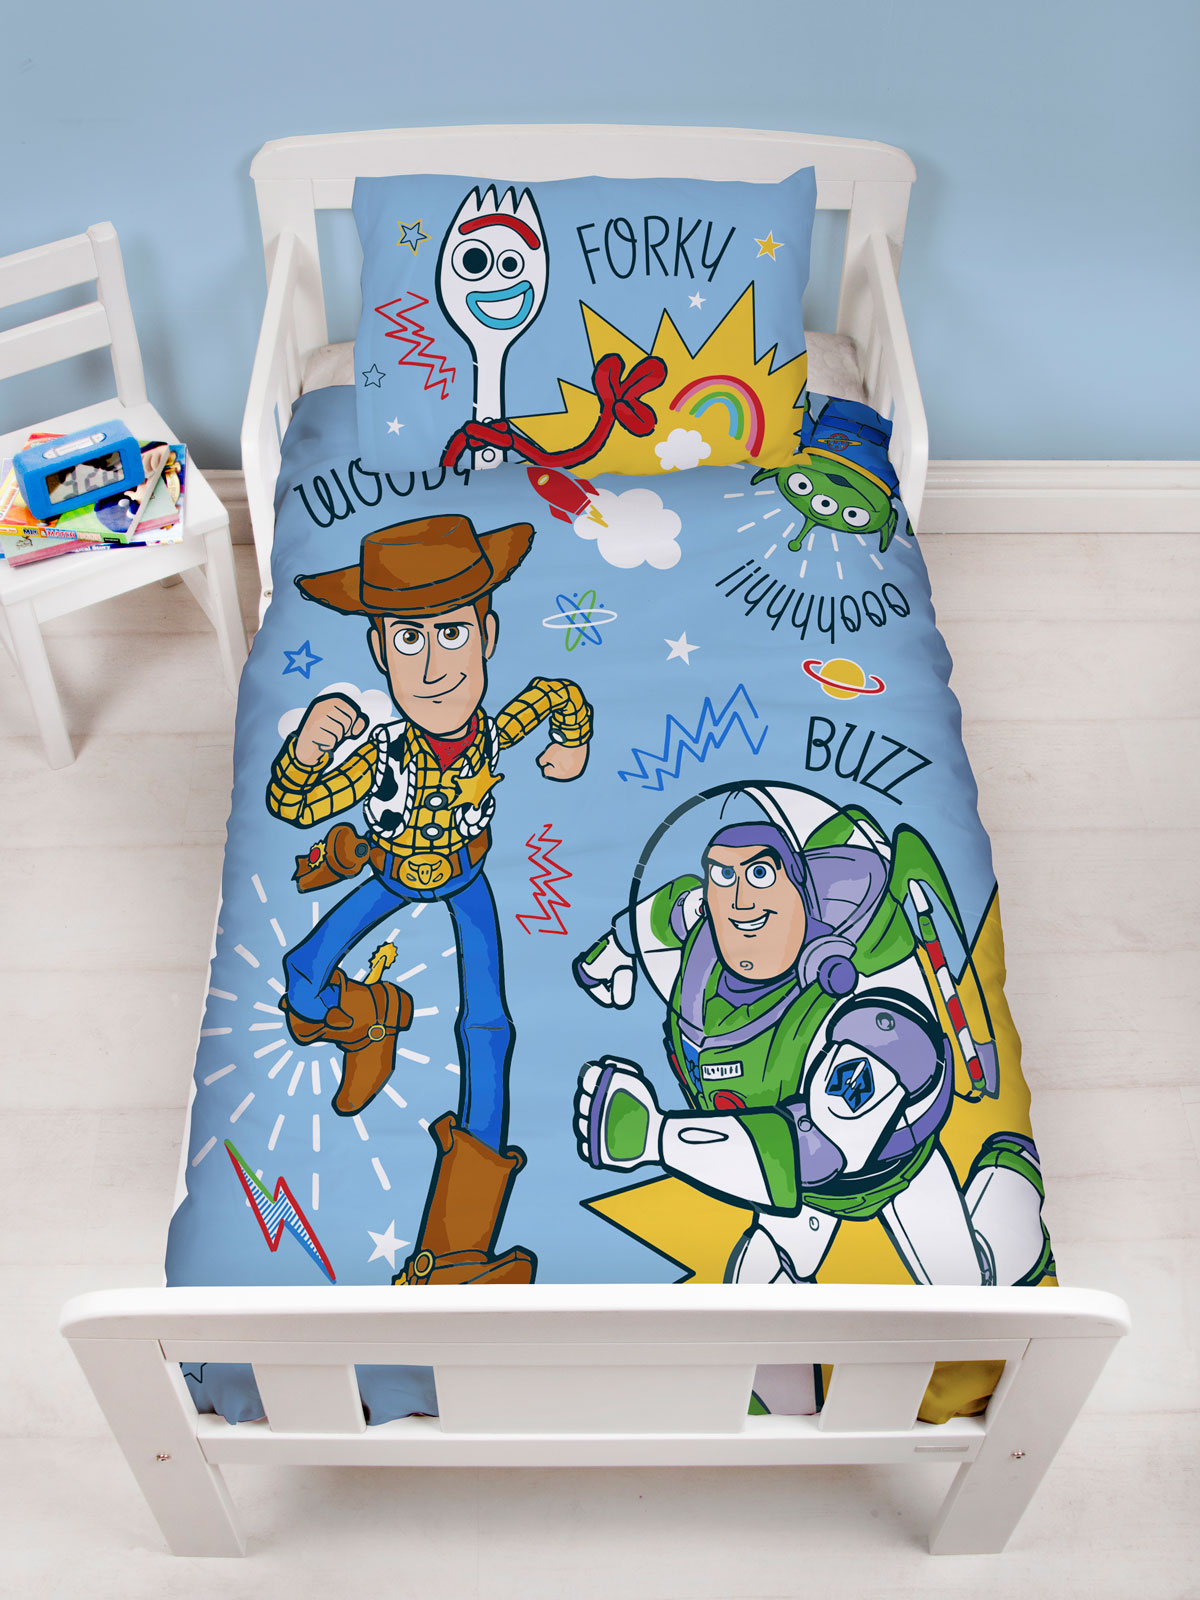 Toy Story Roar 4 in 1 Junior Bedding Bundle Set (Duvet, Pillow and